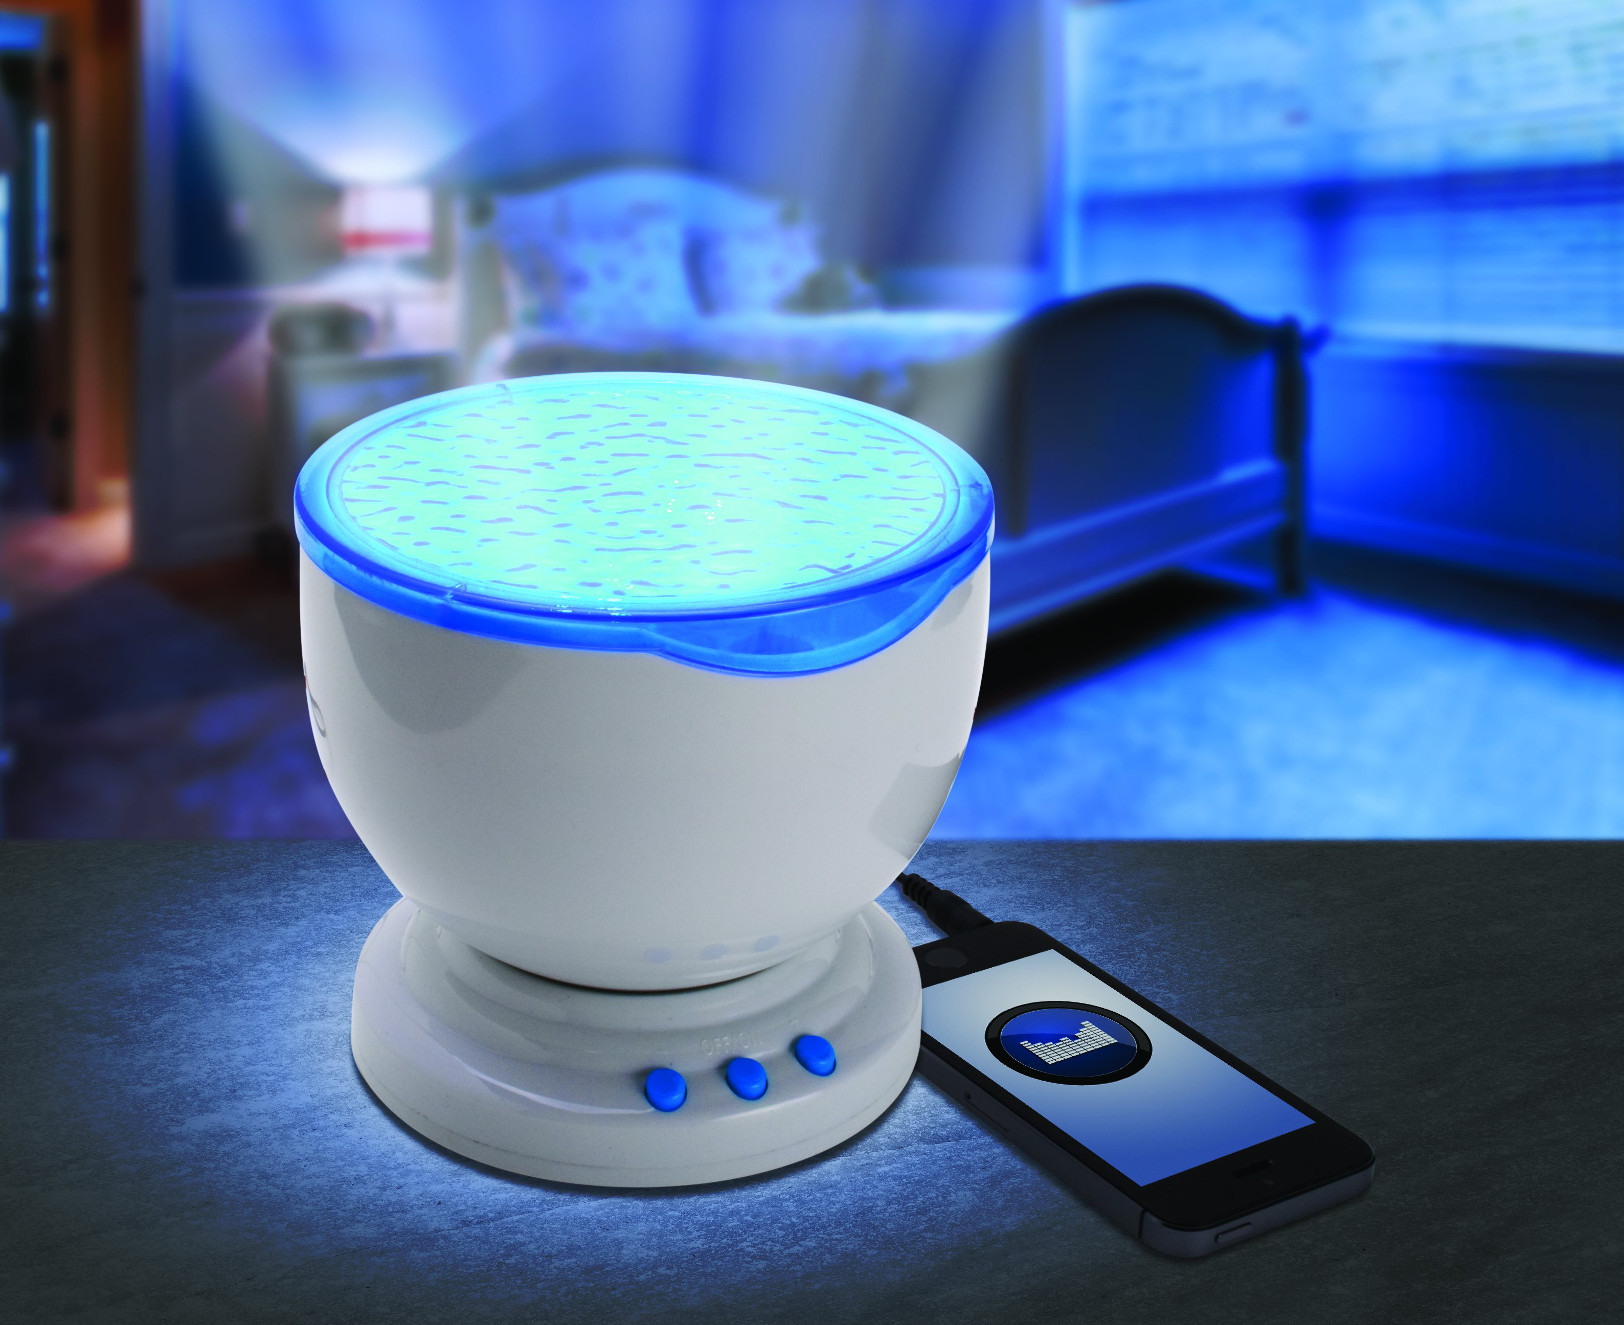 Ocean Wave Nightlight LED Light Projector With Music Player 4 Color Modes